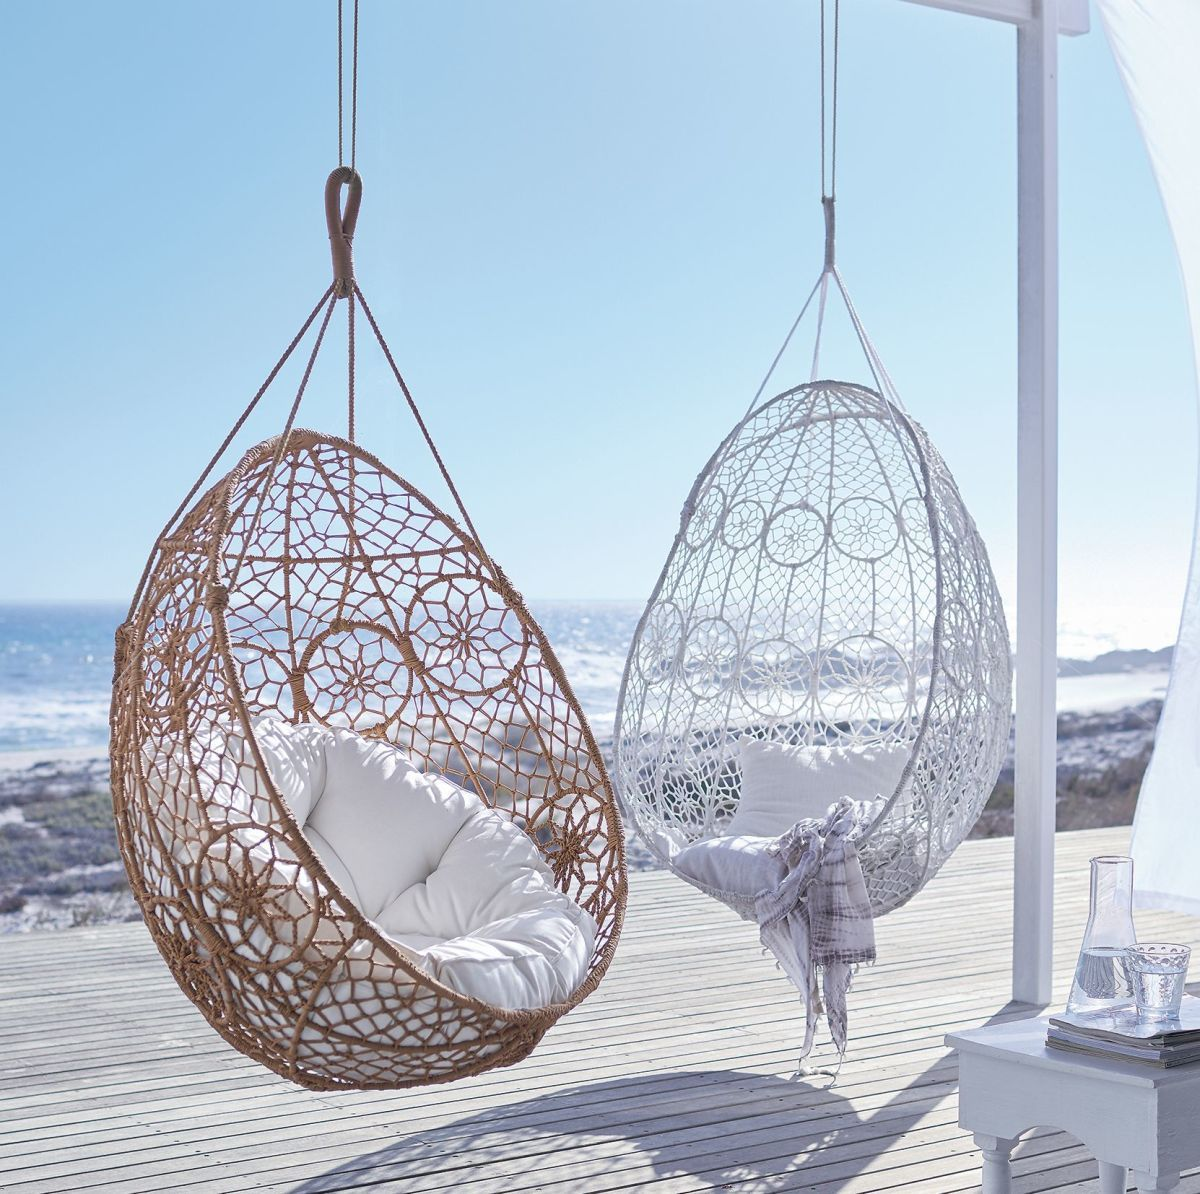 Hanging Chair, Boho, Hängesessel, Outdoorgeeignet, Metall/Polyproylen |  Sitzmöbel | Outdoor